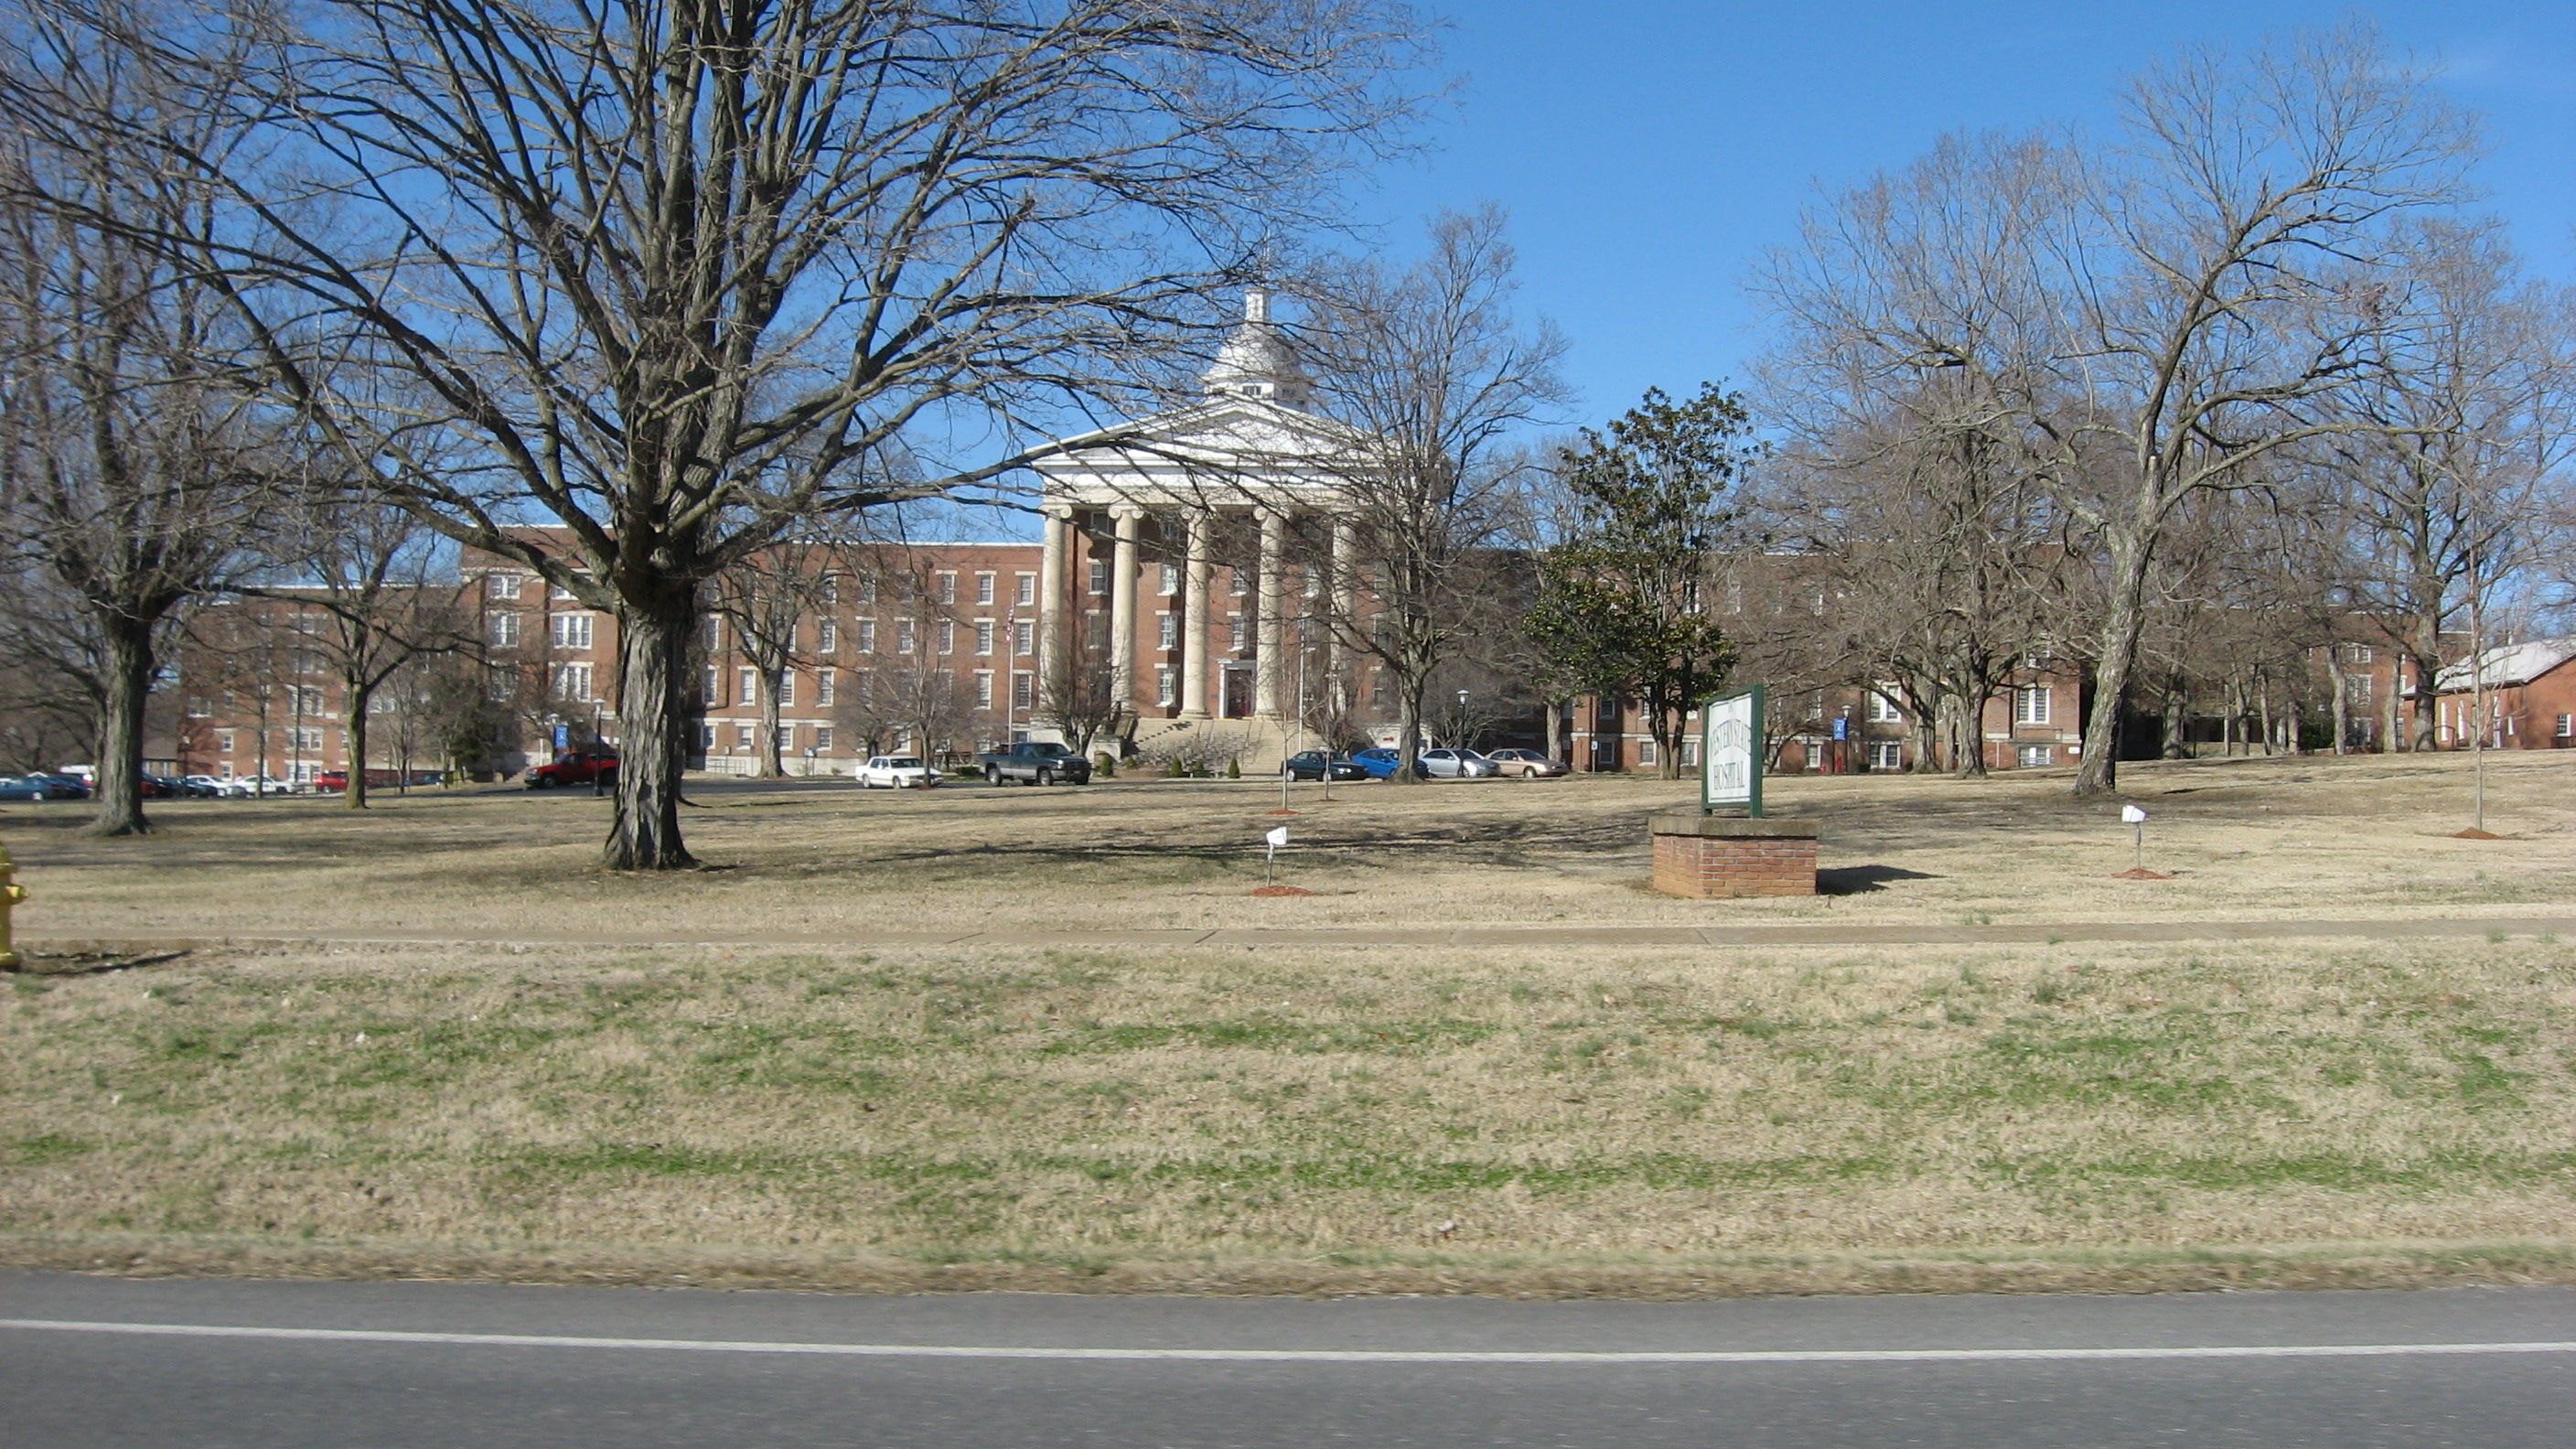 hopkinsville ky dating Travel info, sports, demographic data, and general statistics about the city of hopkinsville, ky.